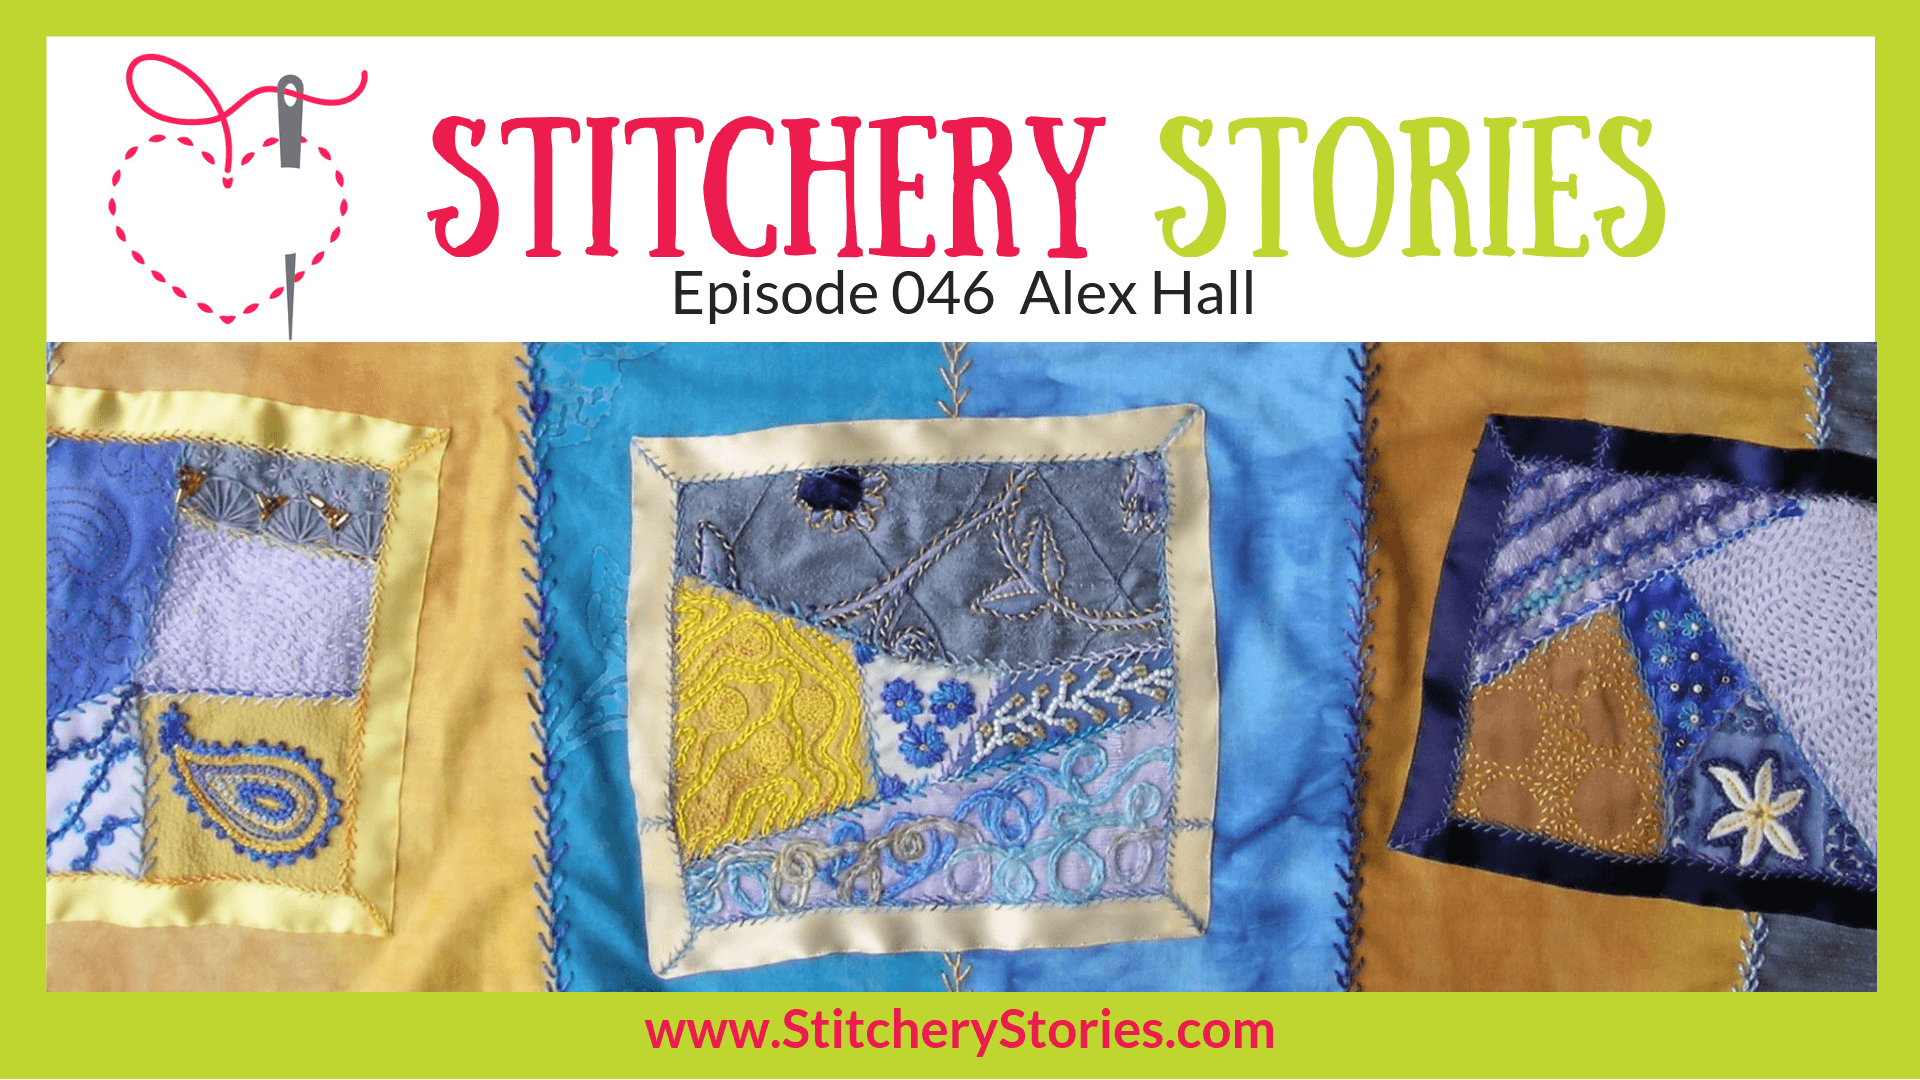 Alex Hall Textile Artist Stitchery Stories Textile Art Podcast Wide Art